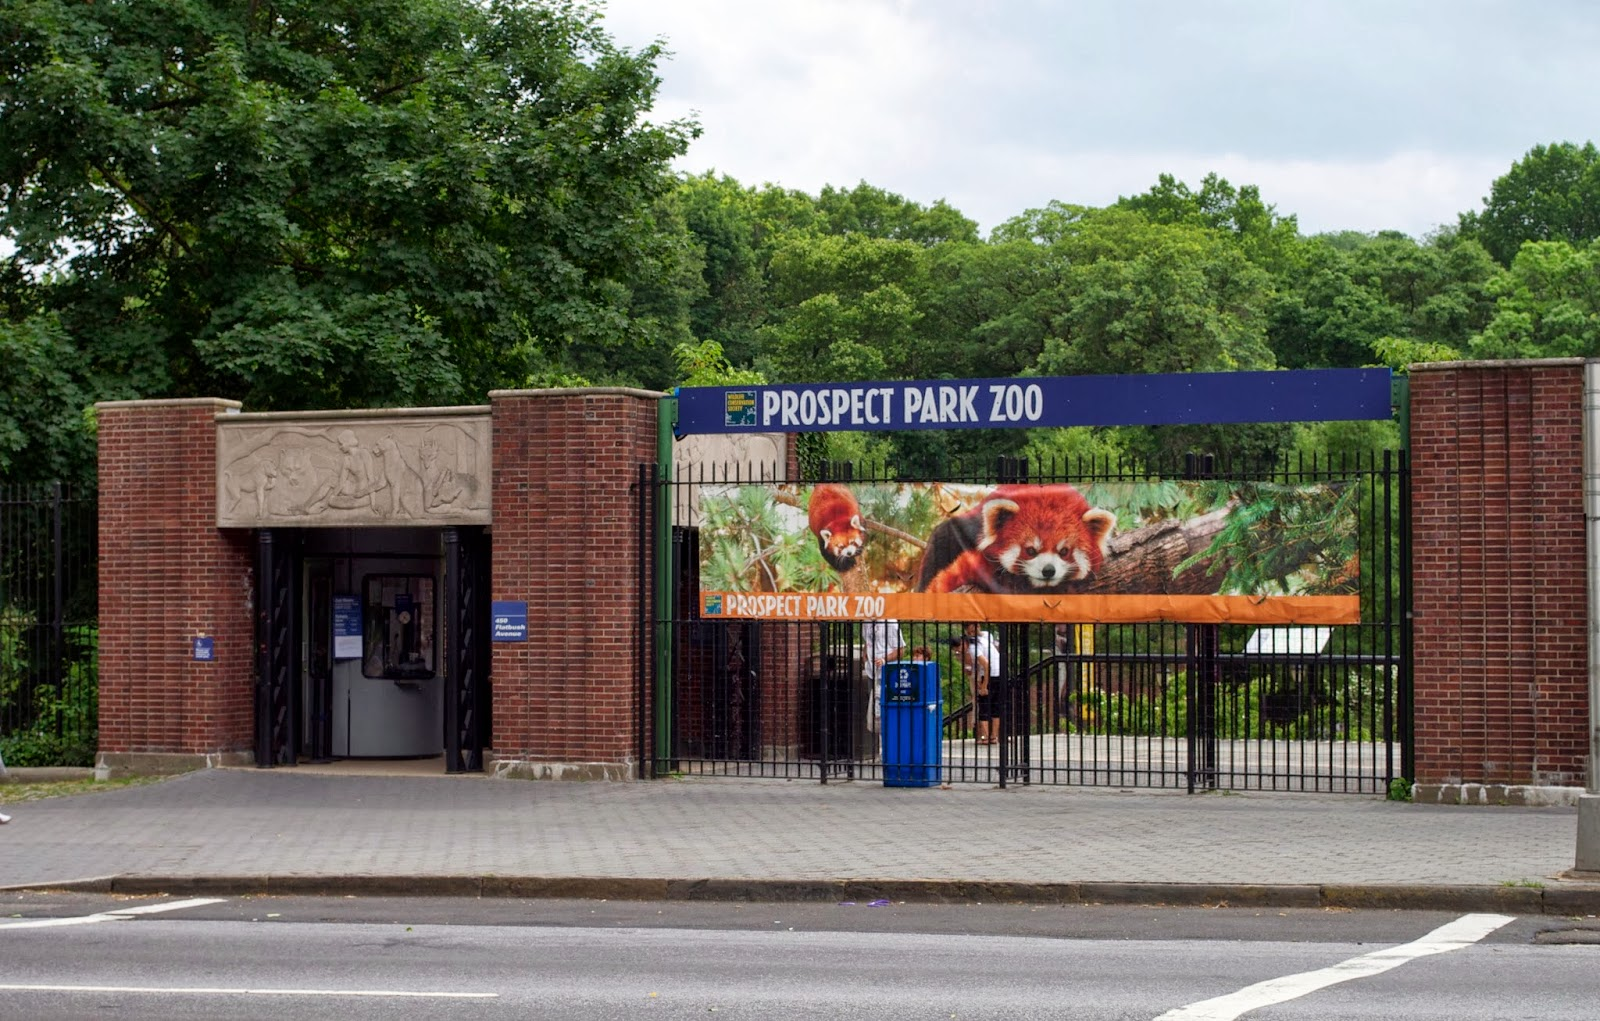 prospect park dating Prospect park is a 585 acre (24 km²) public park in the new york city borough of brooklyn located between park slope, prospect-lefferts gardens, kensington, windsor terrace and flatbush avenue, grand army plaza and the brooklyn botanic garden and seven blocks northeast of green-wood cemetery.